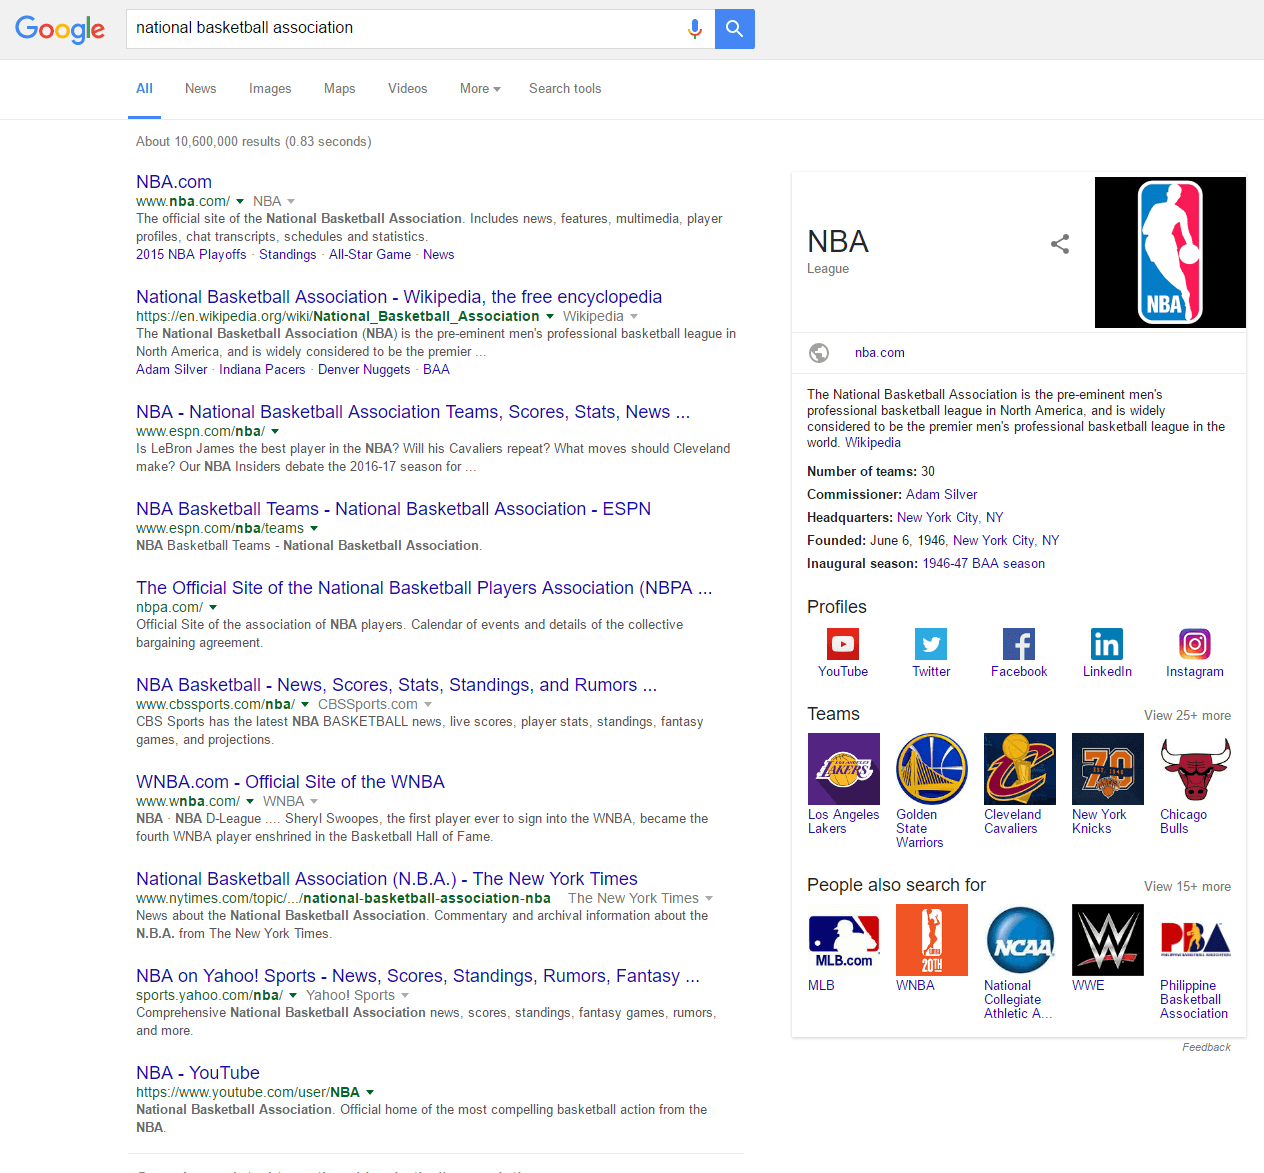 national basketball association SERP